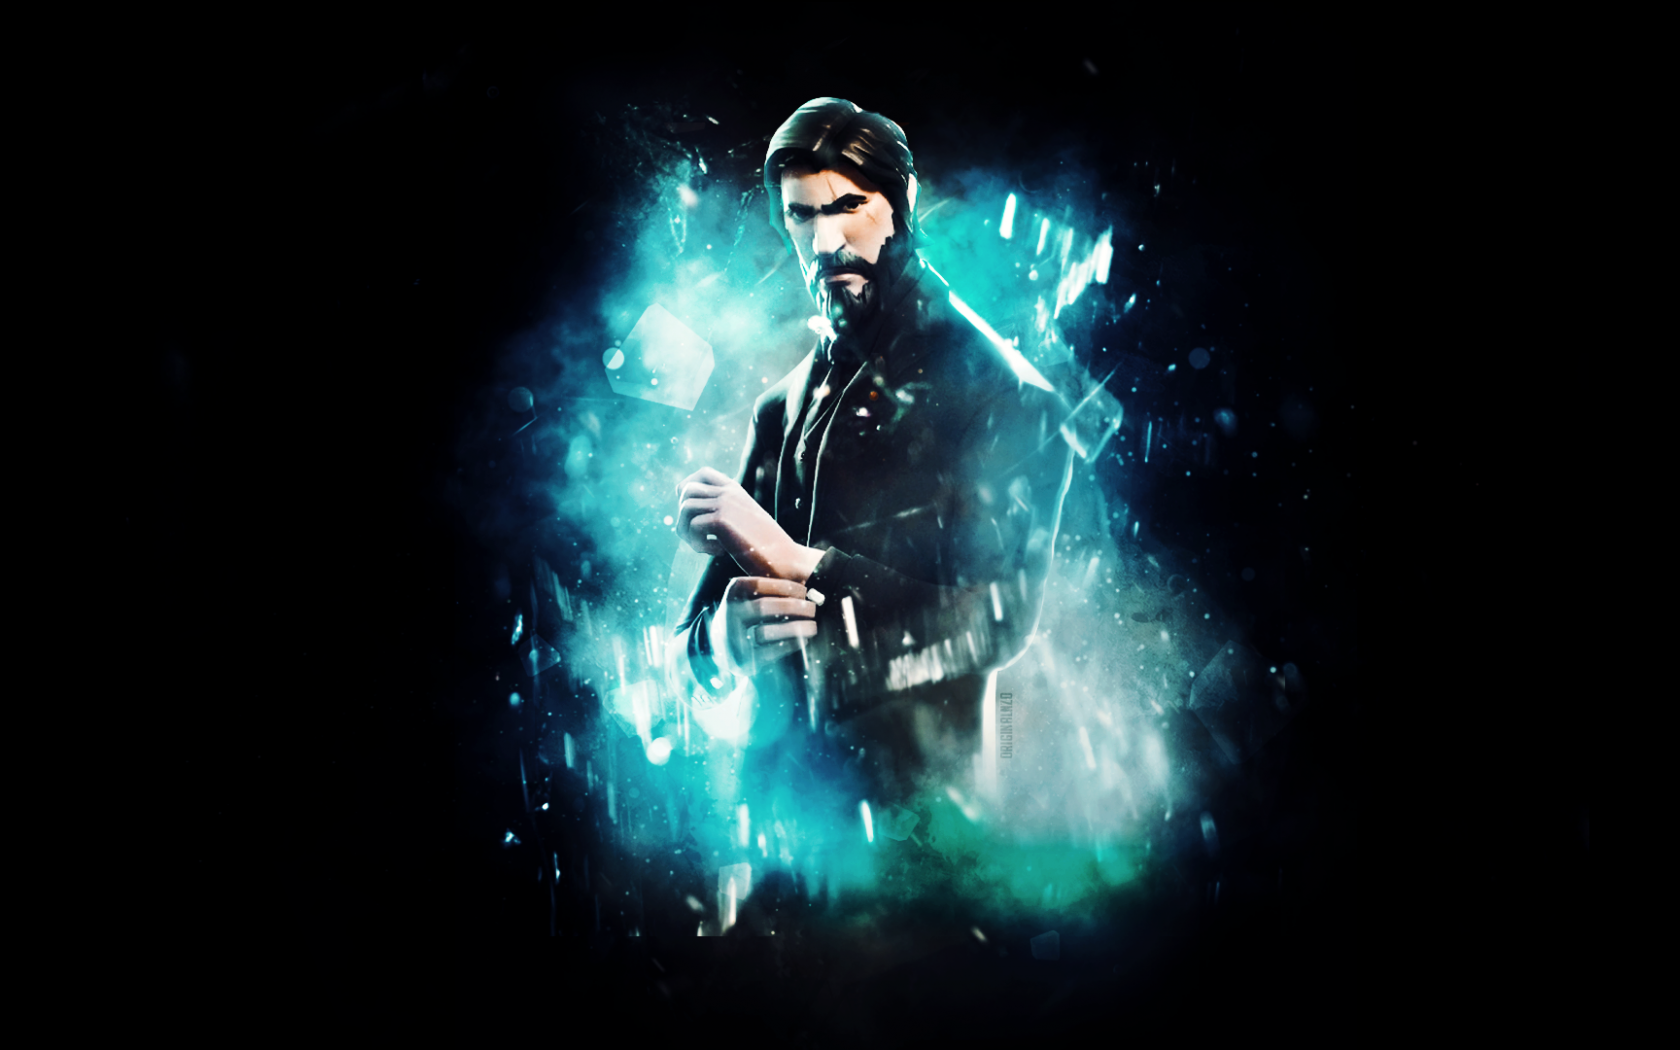 Free Download The Reaper John Wick Wallpaper Edit Fortnitebr 1920x1080 For Your Desktop Mobile Tablet Explore 27 Fortnite John Wick Wallpapers John Wick Fortnite Wallpapers Fortnite John Wick Wallpapers